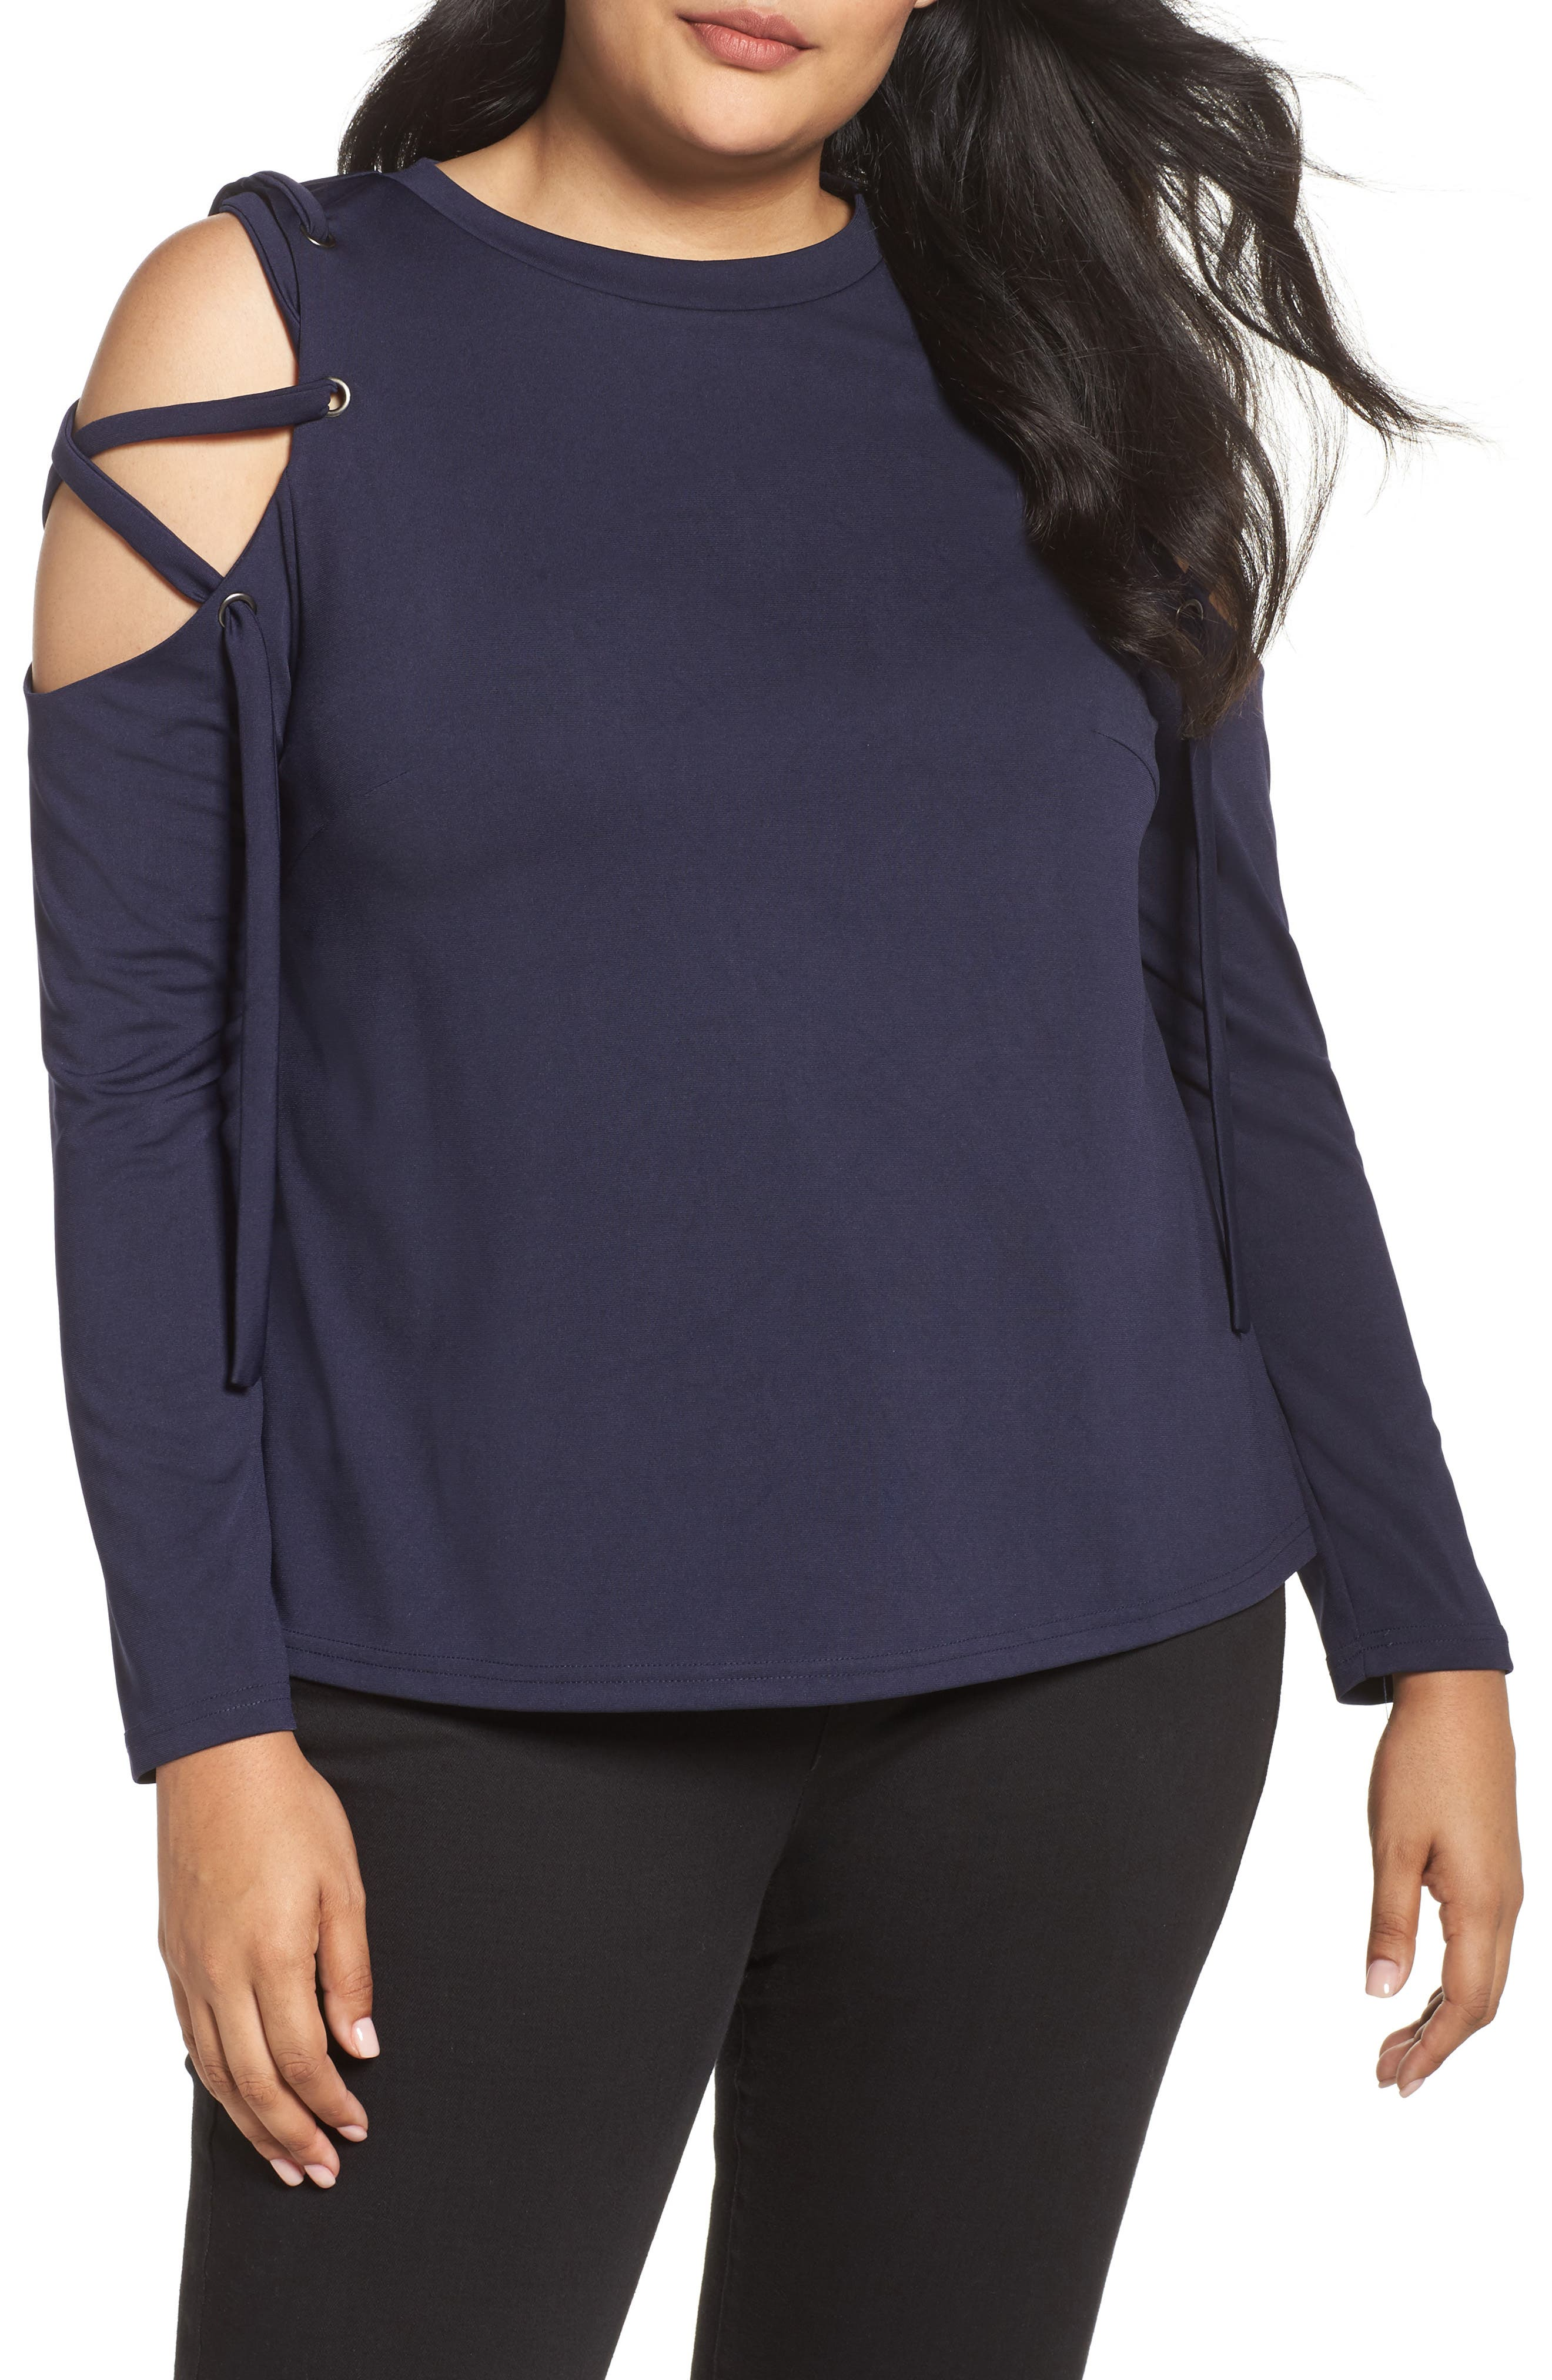 Main Image - Lost Ink Eyelet Lace-Up Sleeve Top (Plus Size)